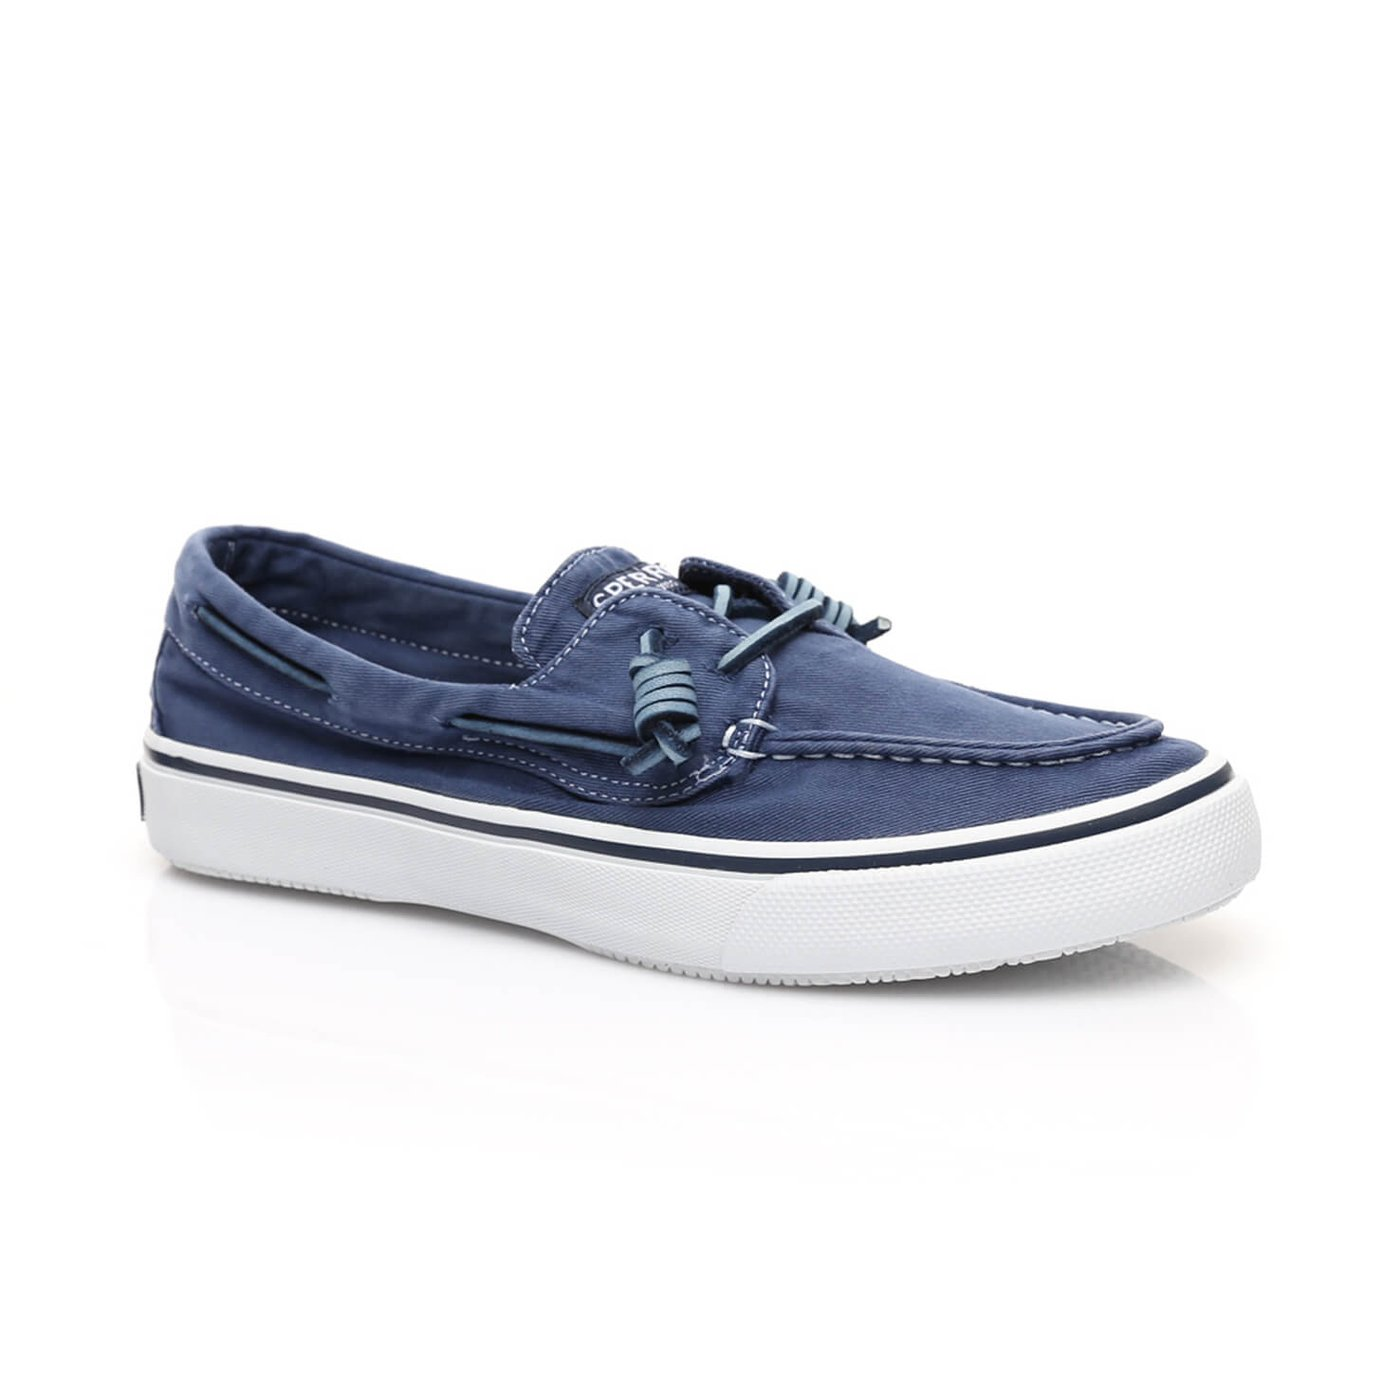 Sperry Bahama 2-Eye Washed Erkek Lacivert Sneaker